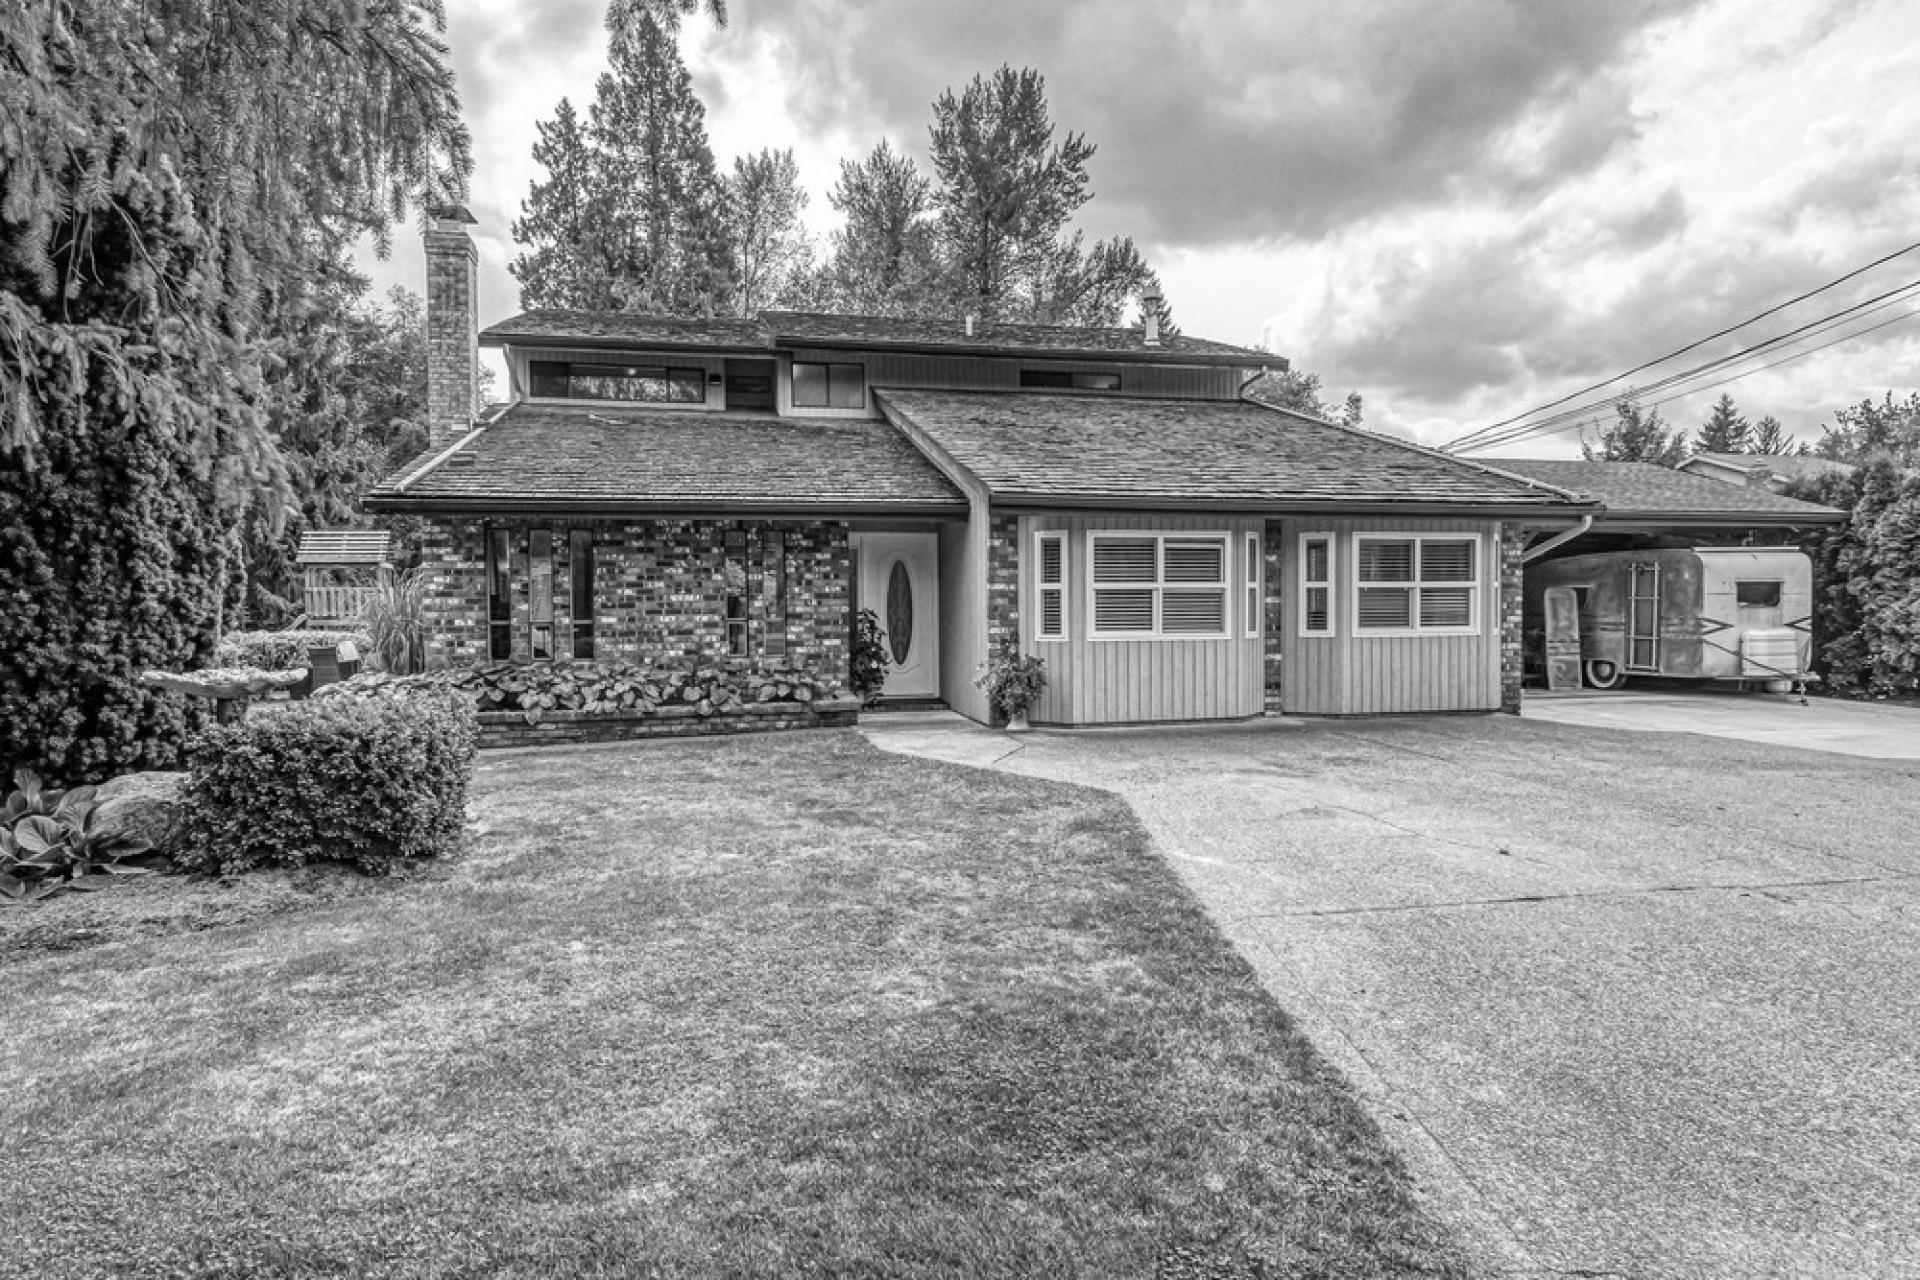 19260 87 Avenue, Port Kells, North Surrey 3